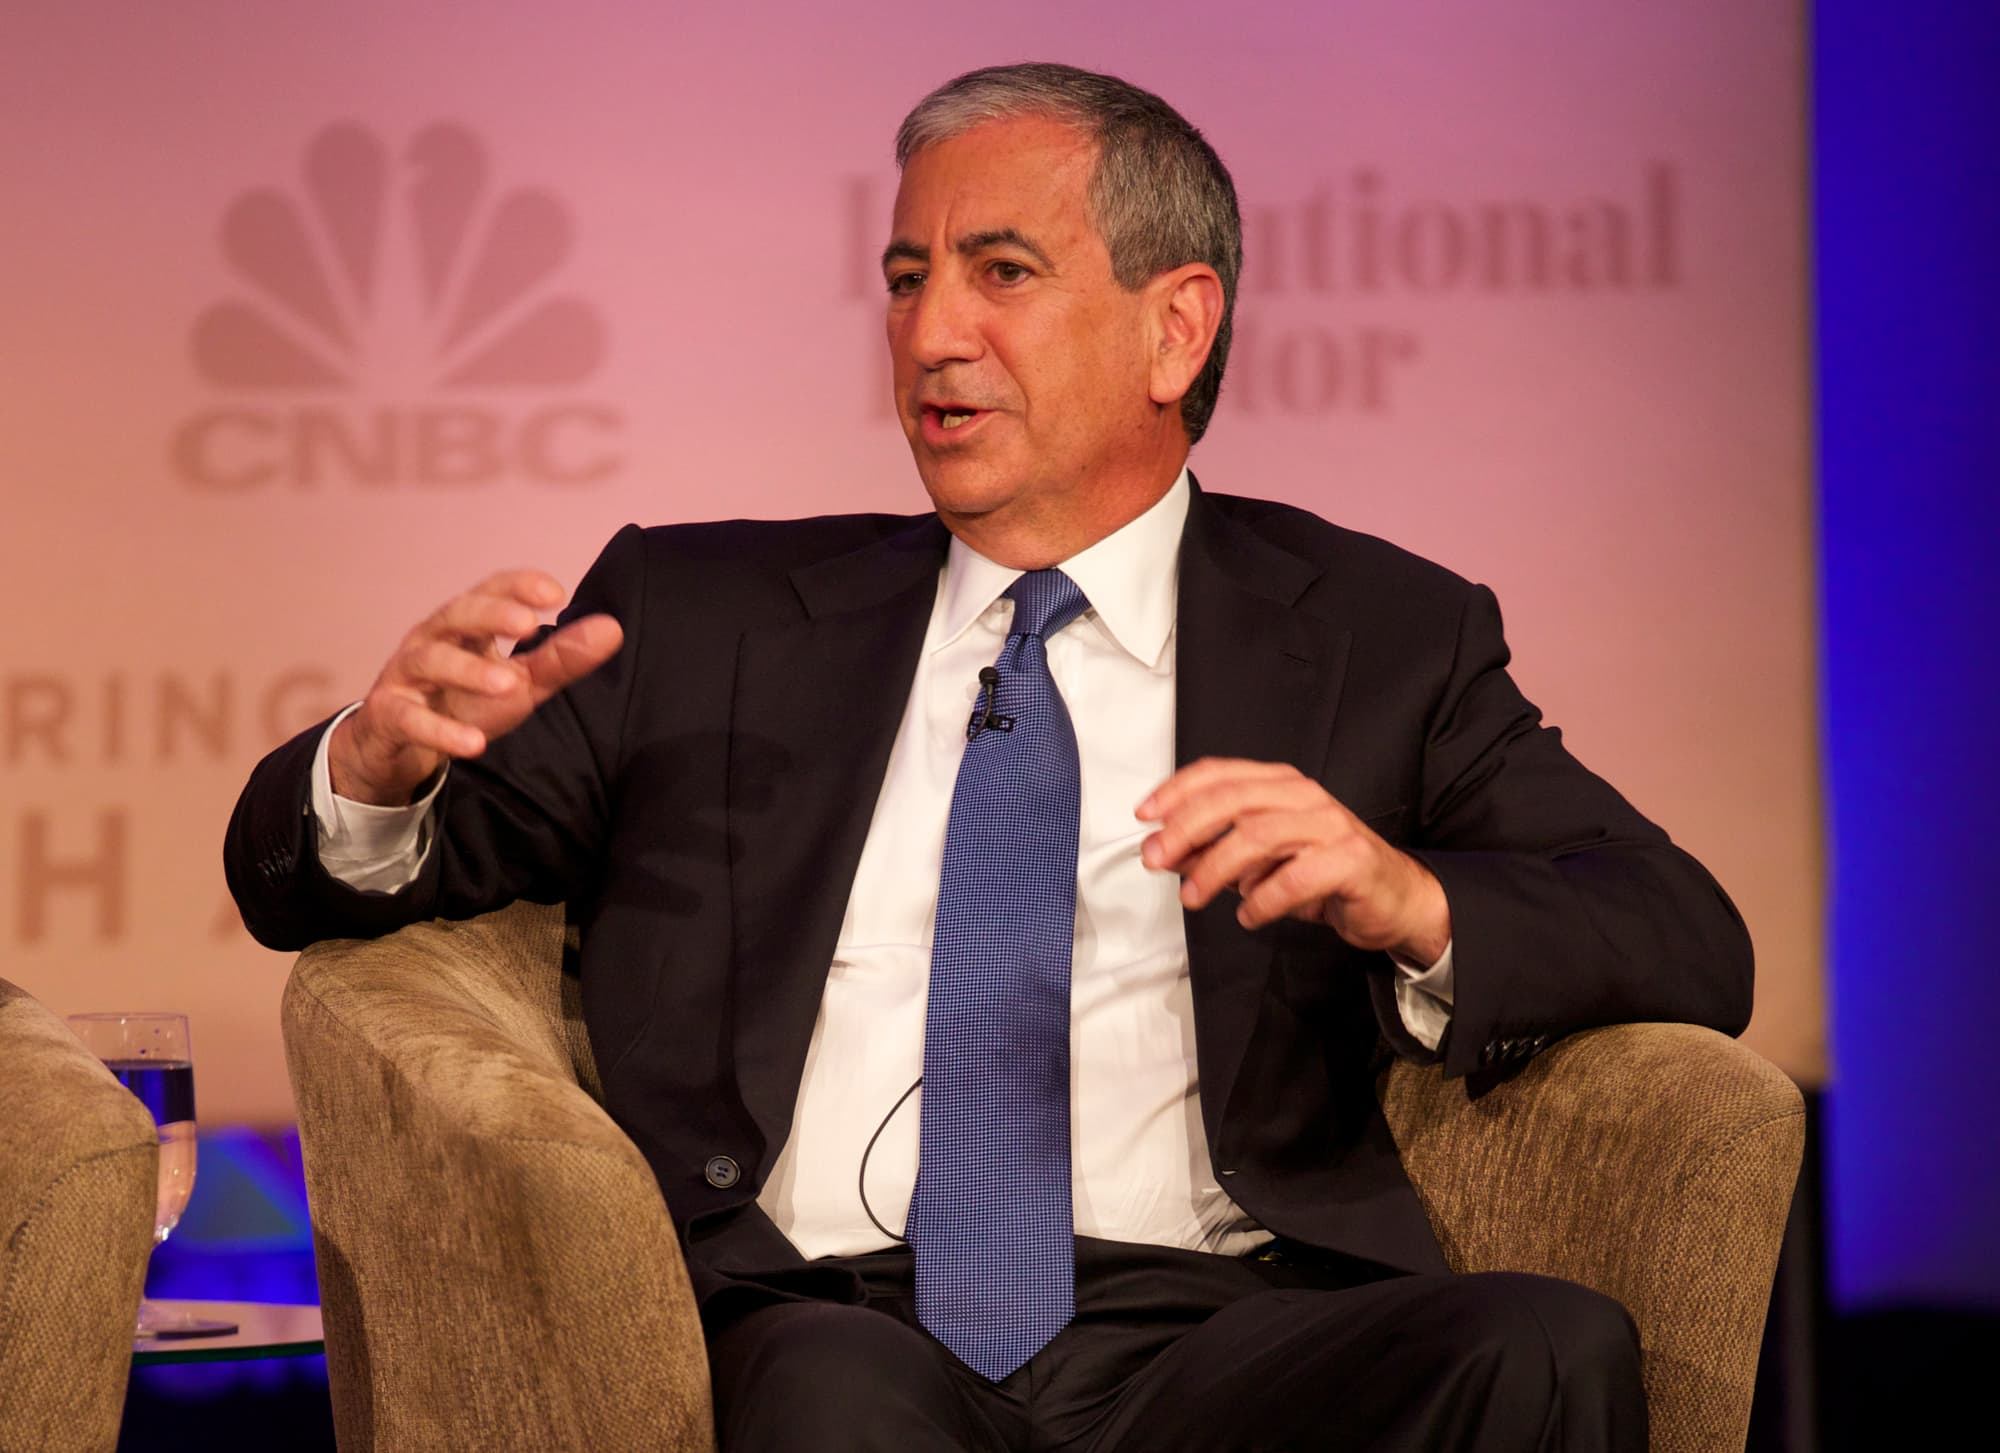 M&A powerbroker Ken Moelis: It's 'almost impossible' to get US public firms to do China deals